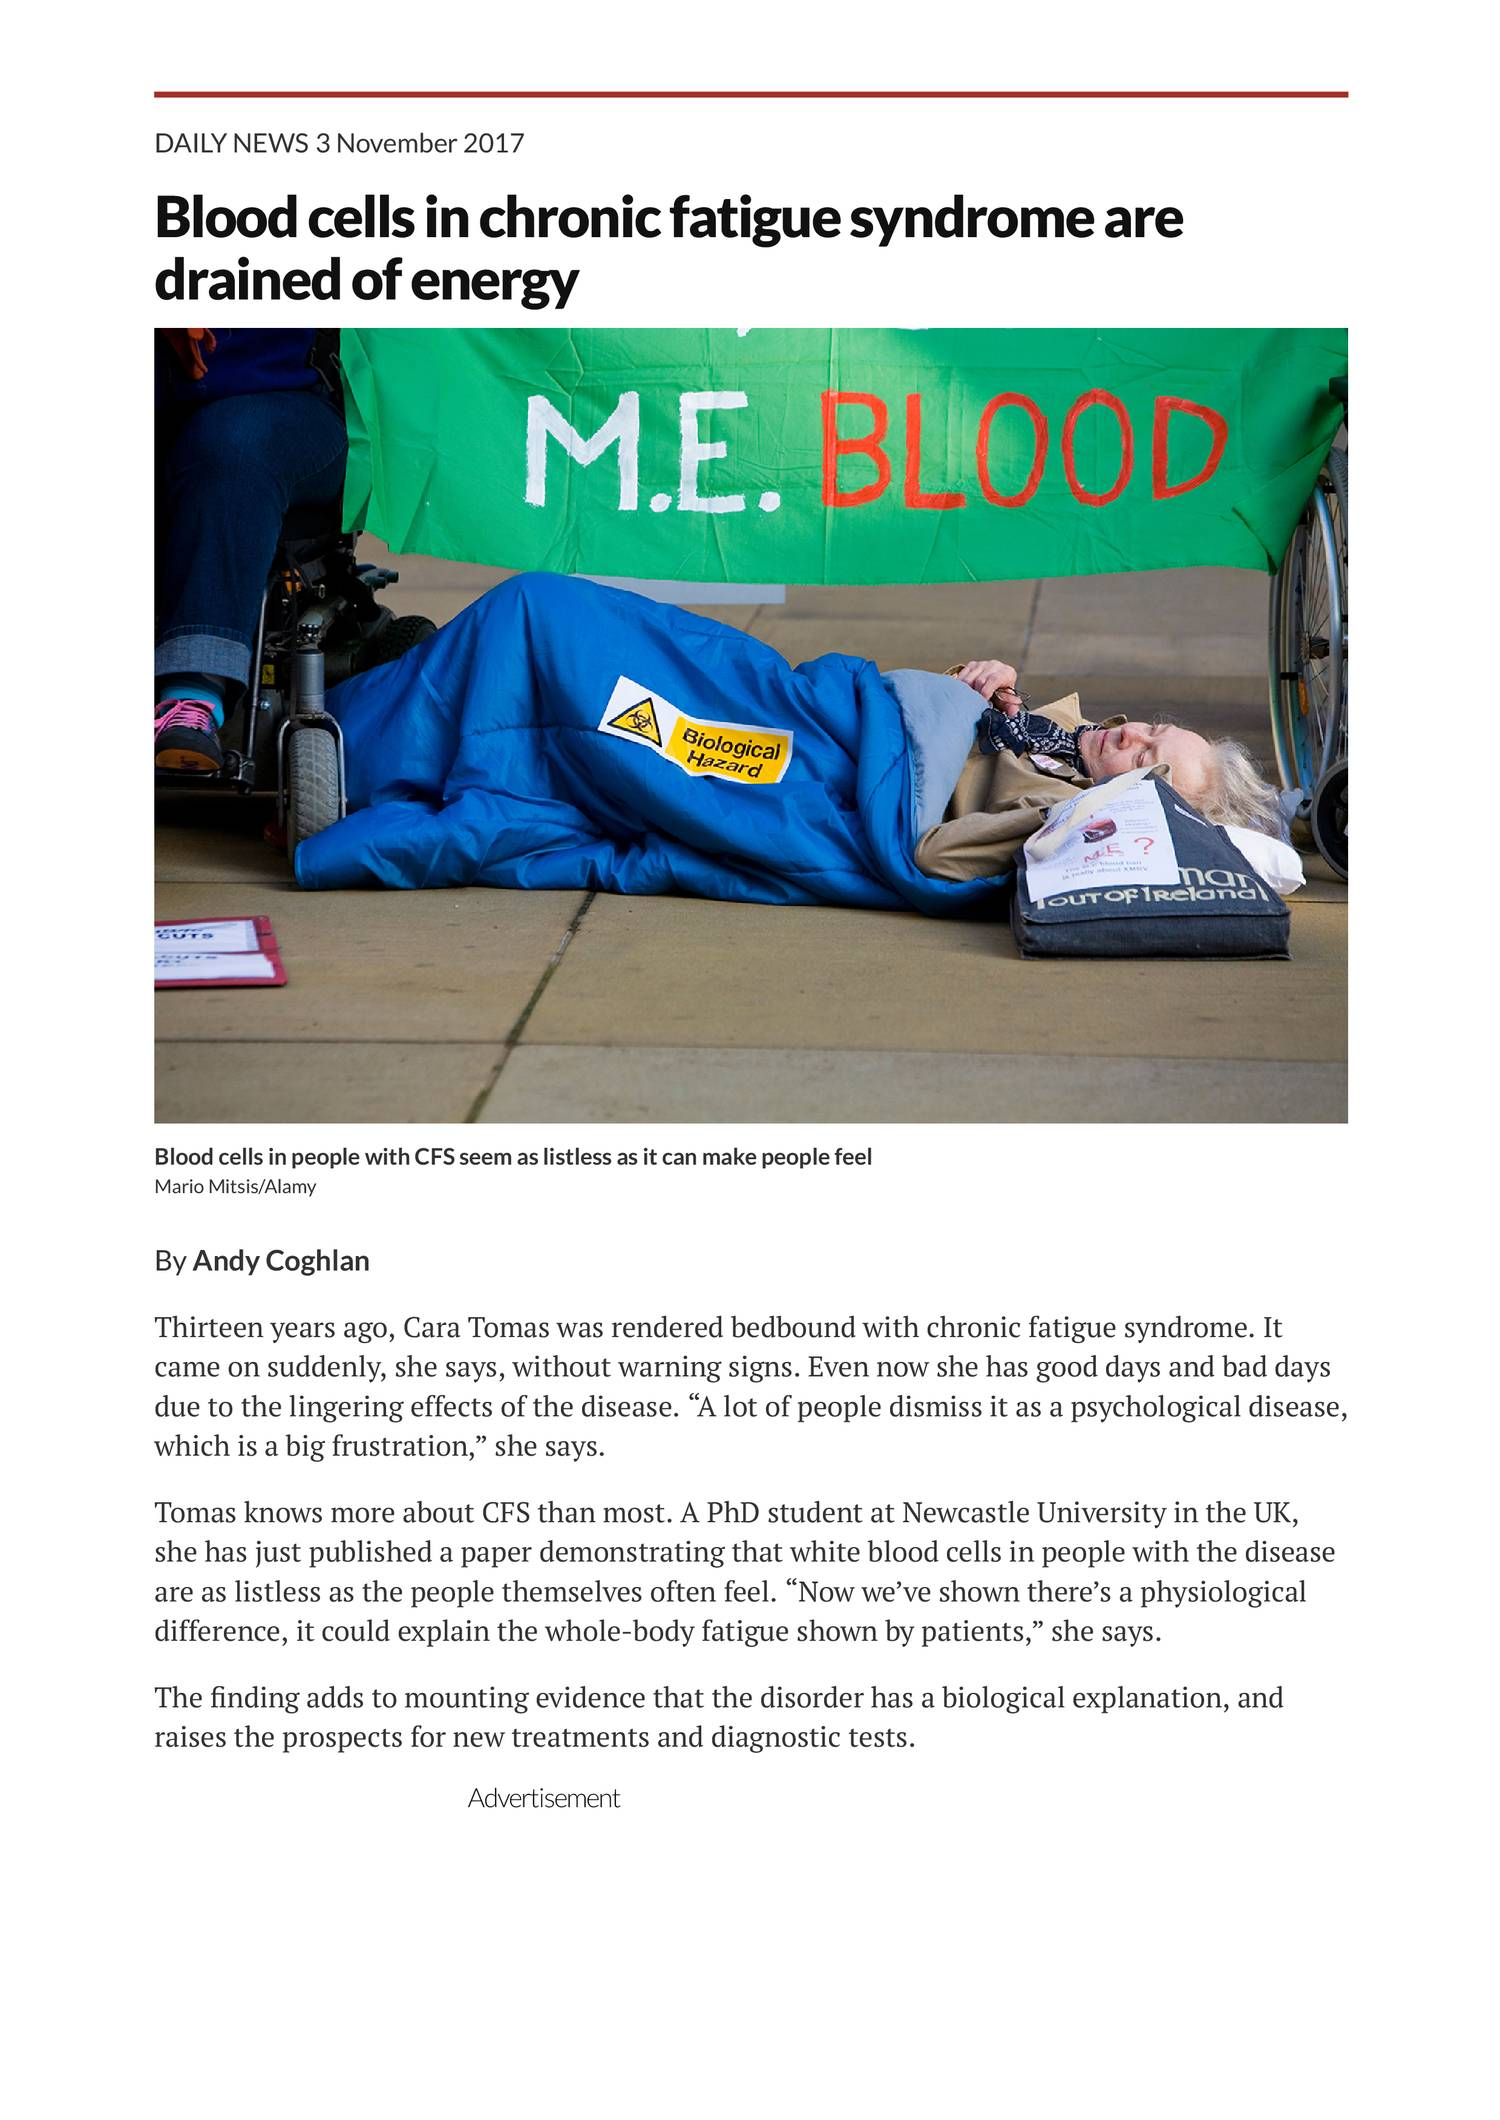 Blood cells in chronic fatigue syndrome are drained of